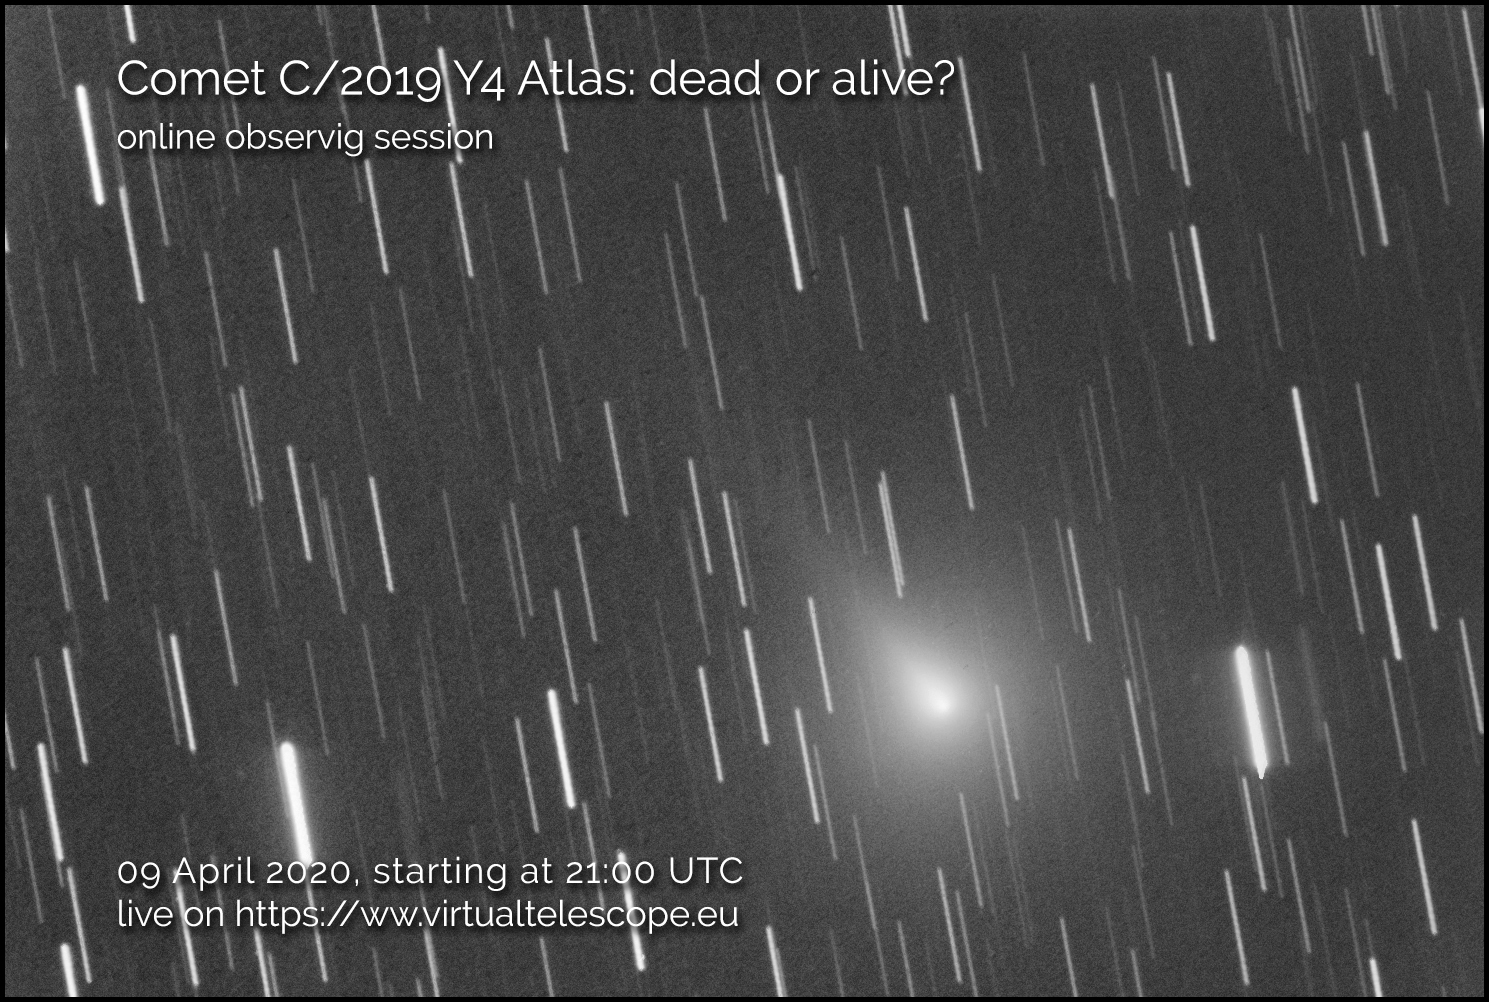 Comet C/2019 Y4 Atlas: dead or alive? - poster of the event